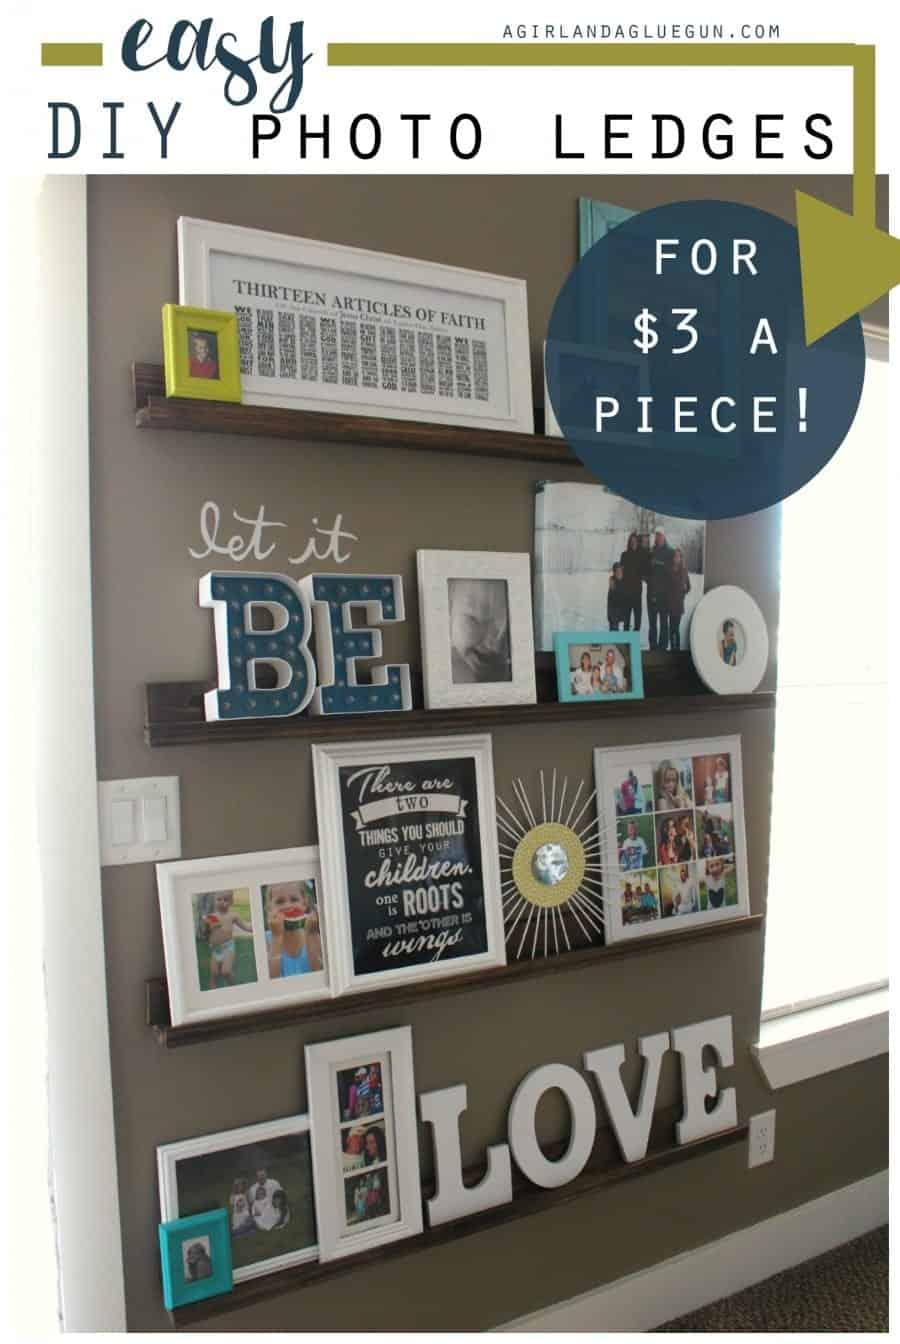 you-make-these-easy-diy-photo-ledges-for-less-than-3-a-piece-900x1344